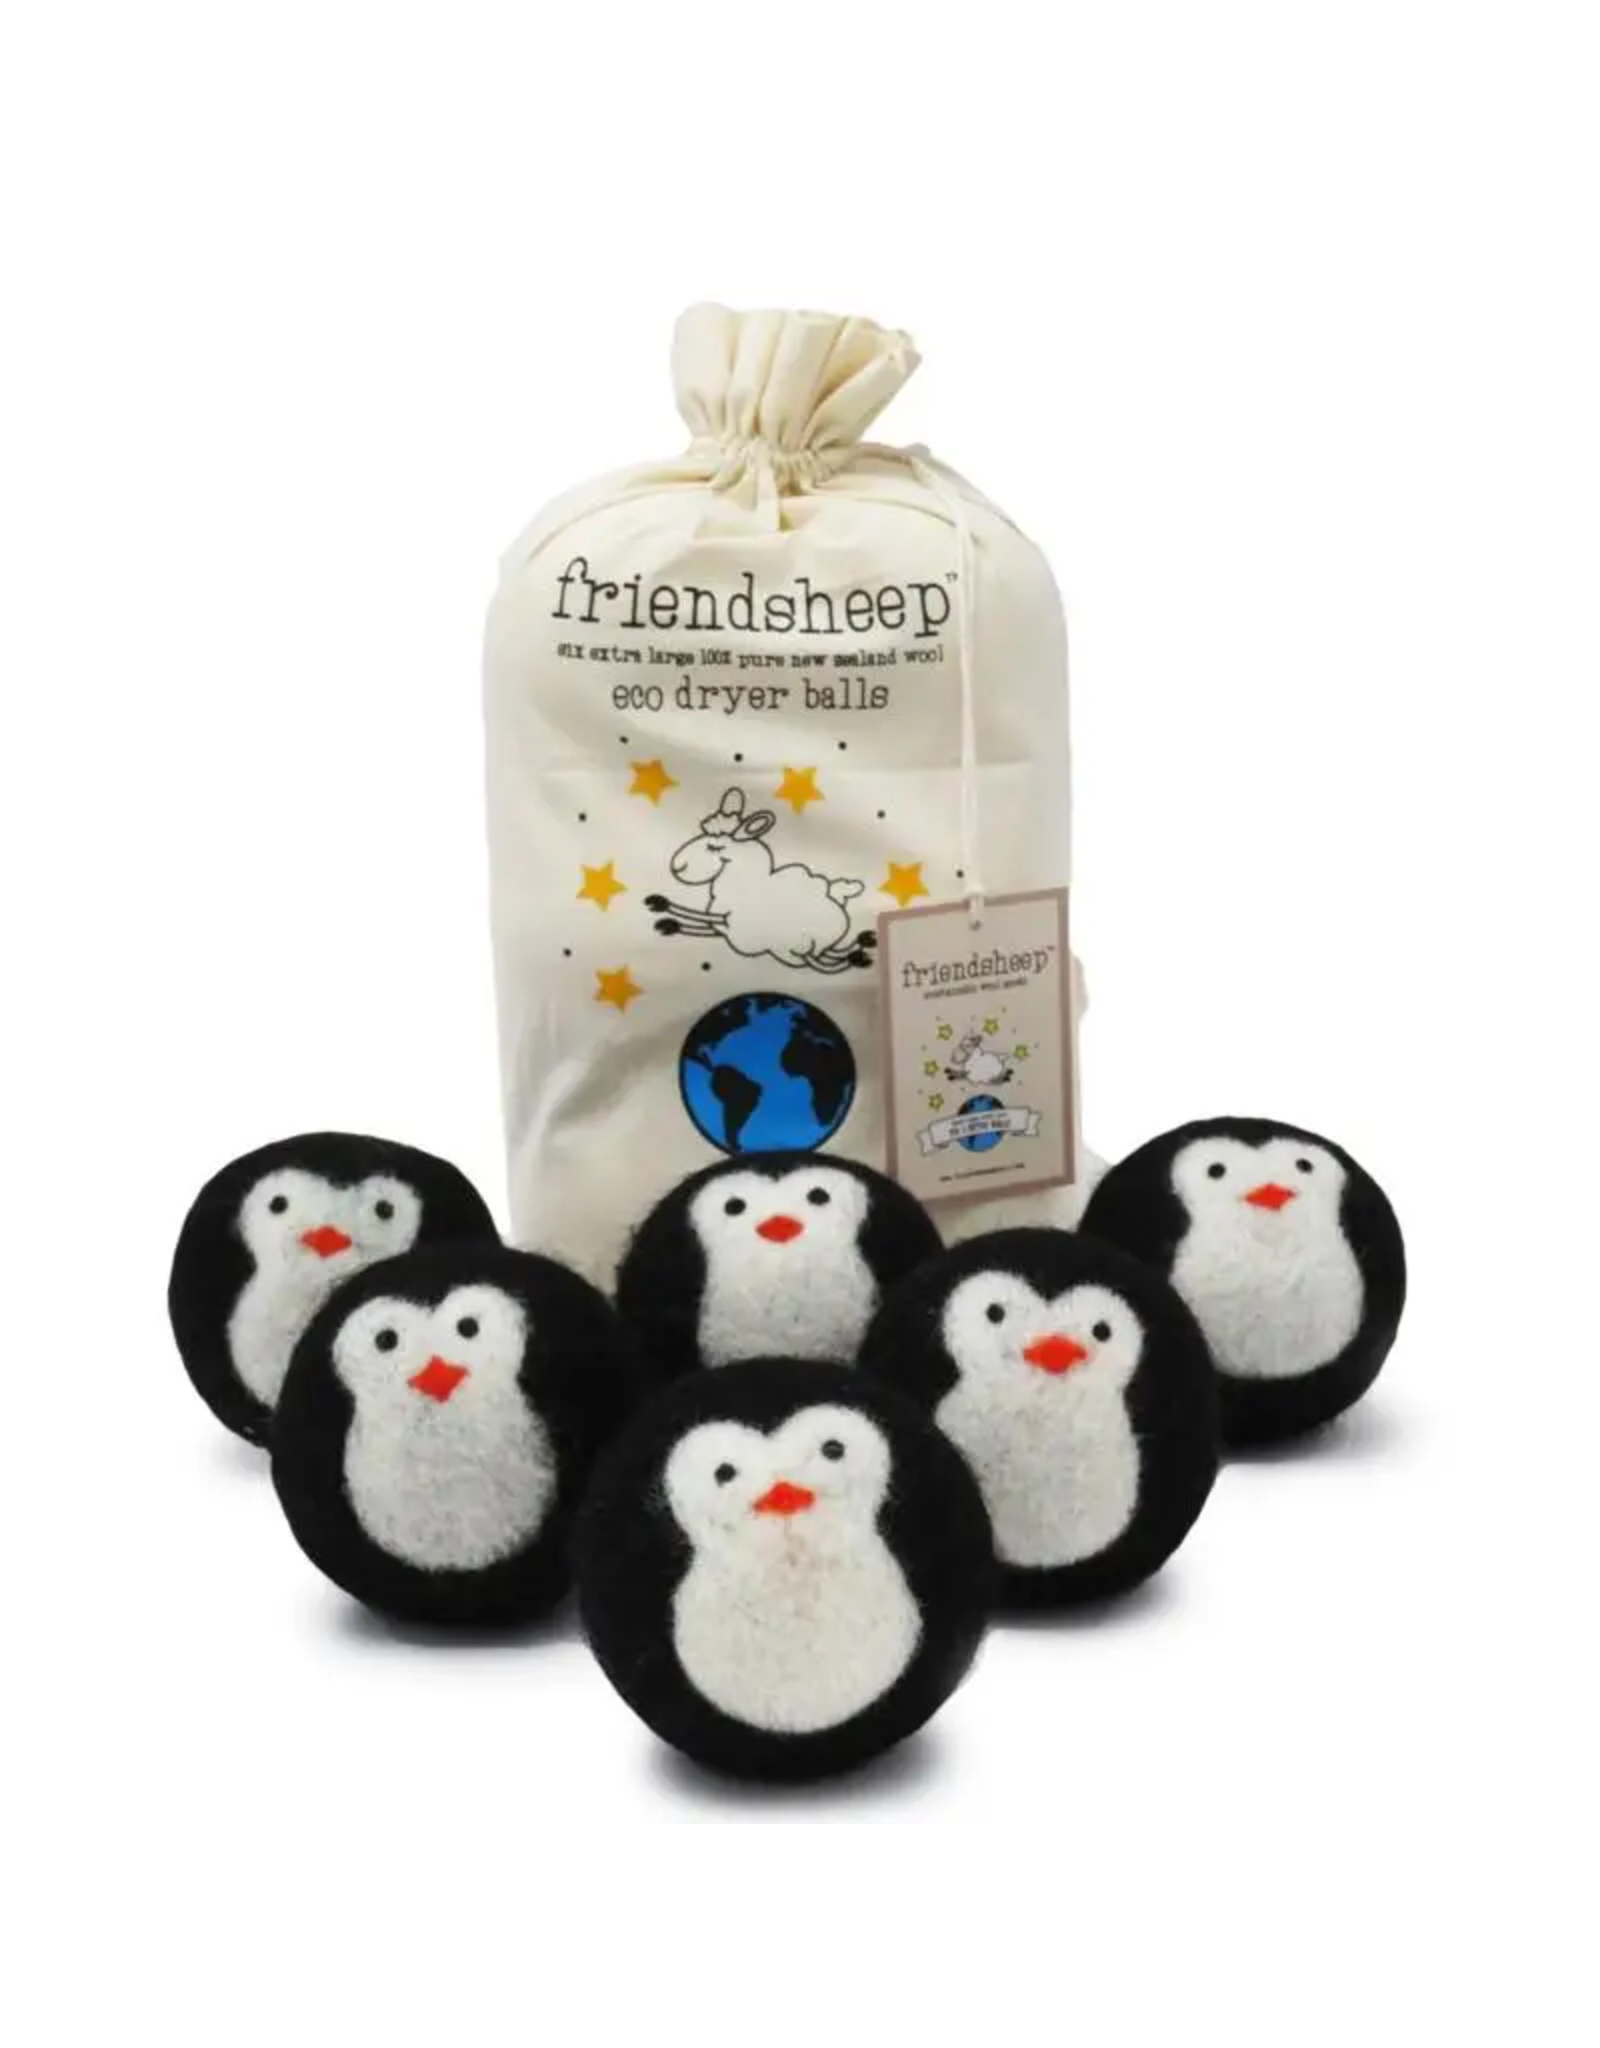 Friendsheep Cool Friends Wool Dryer Balls